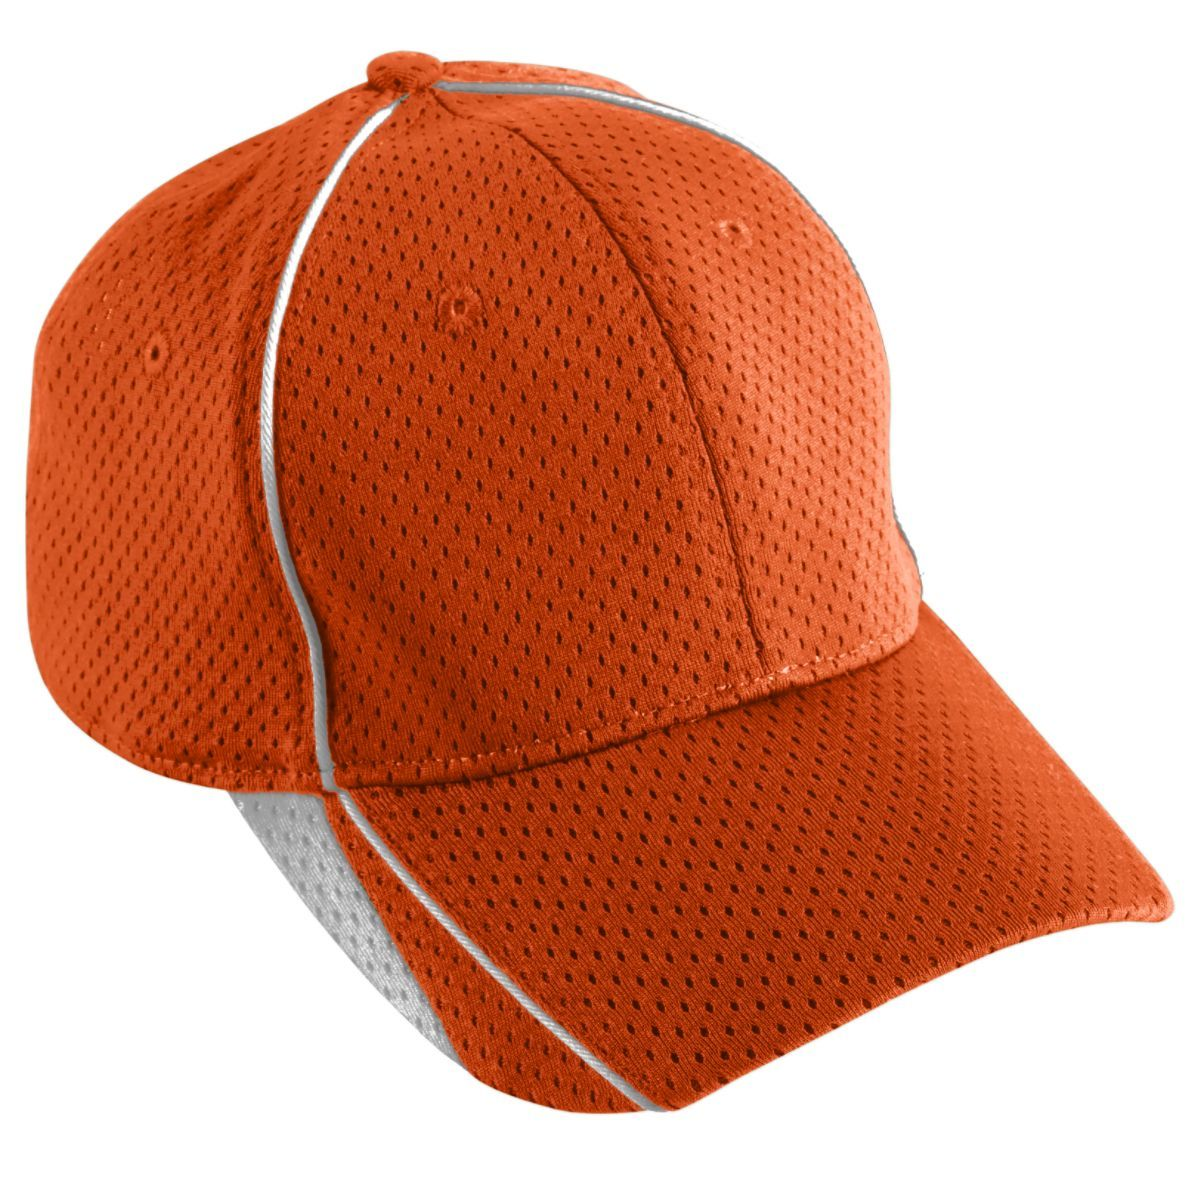 Force Cap - Orange/white